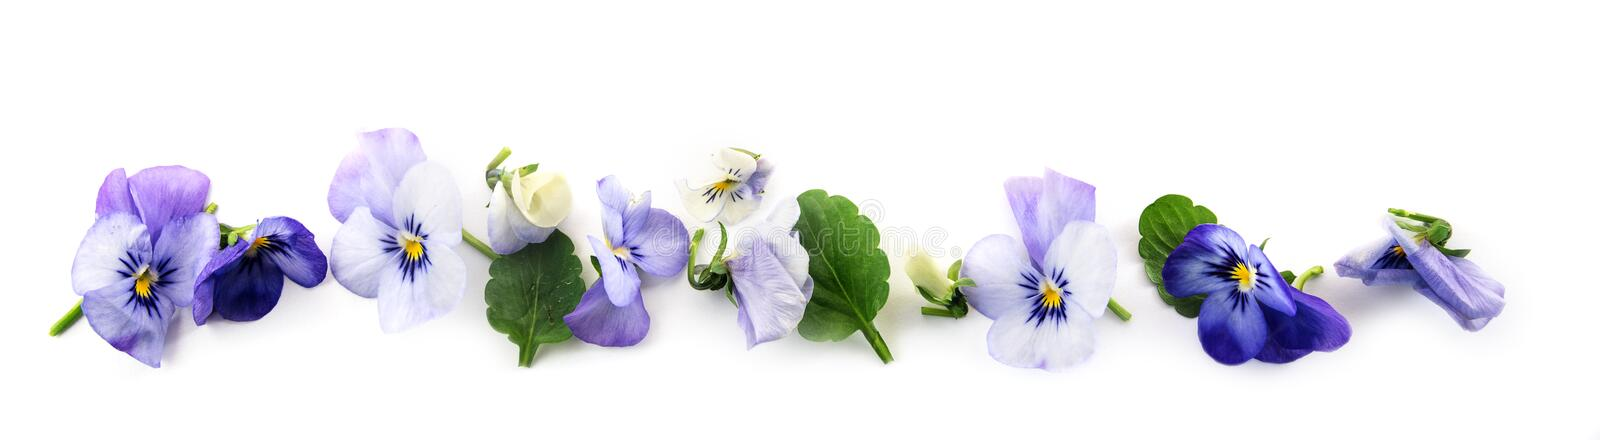 purple blue pansy flowers and leaves in a row, spring banner background in panoramic format isolated with small shadows on a whit stock photo